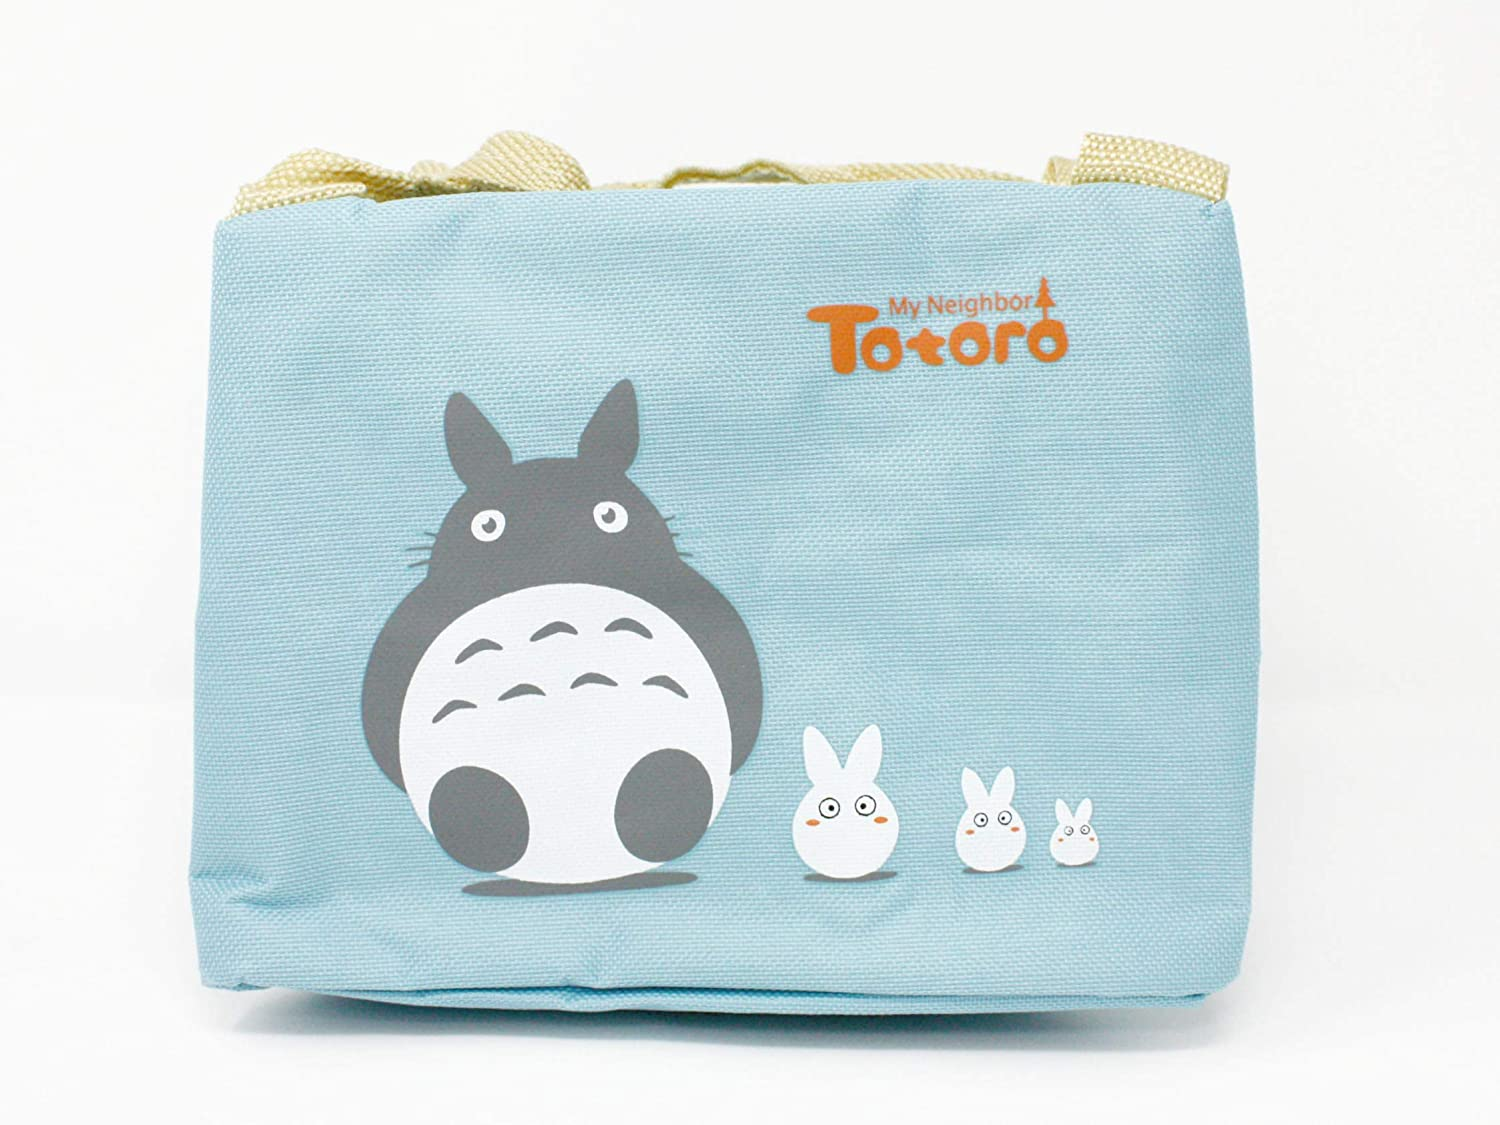 My Neighbor Totoro Lunch Bag for Kids, an Insulated Thermal Picnic Lunch Bag   Amazon.co.uk  Kitchen   Home 721d482add